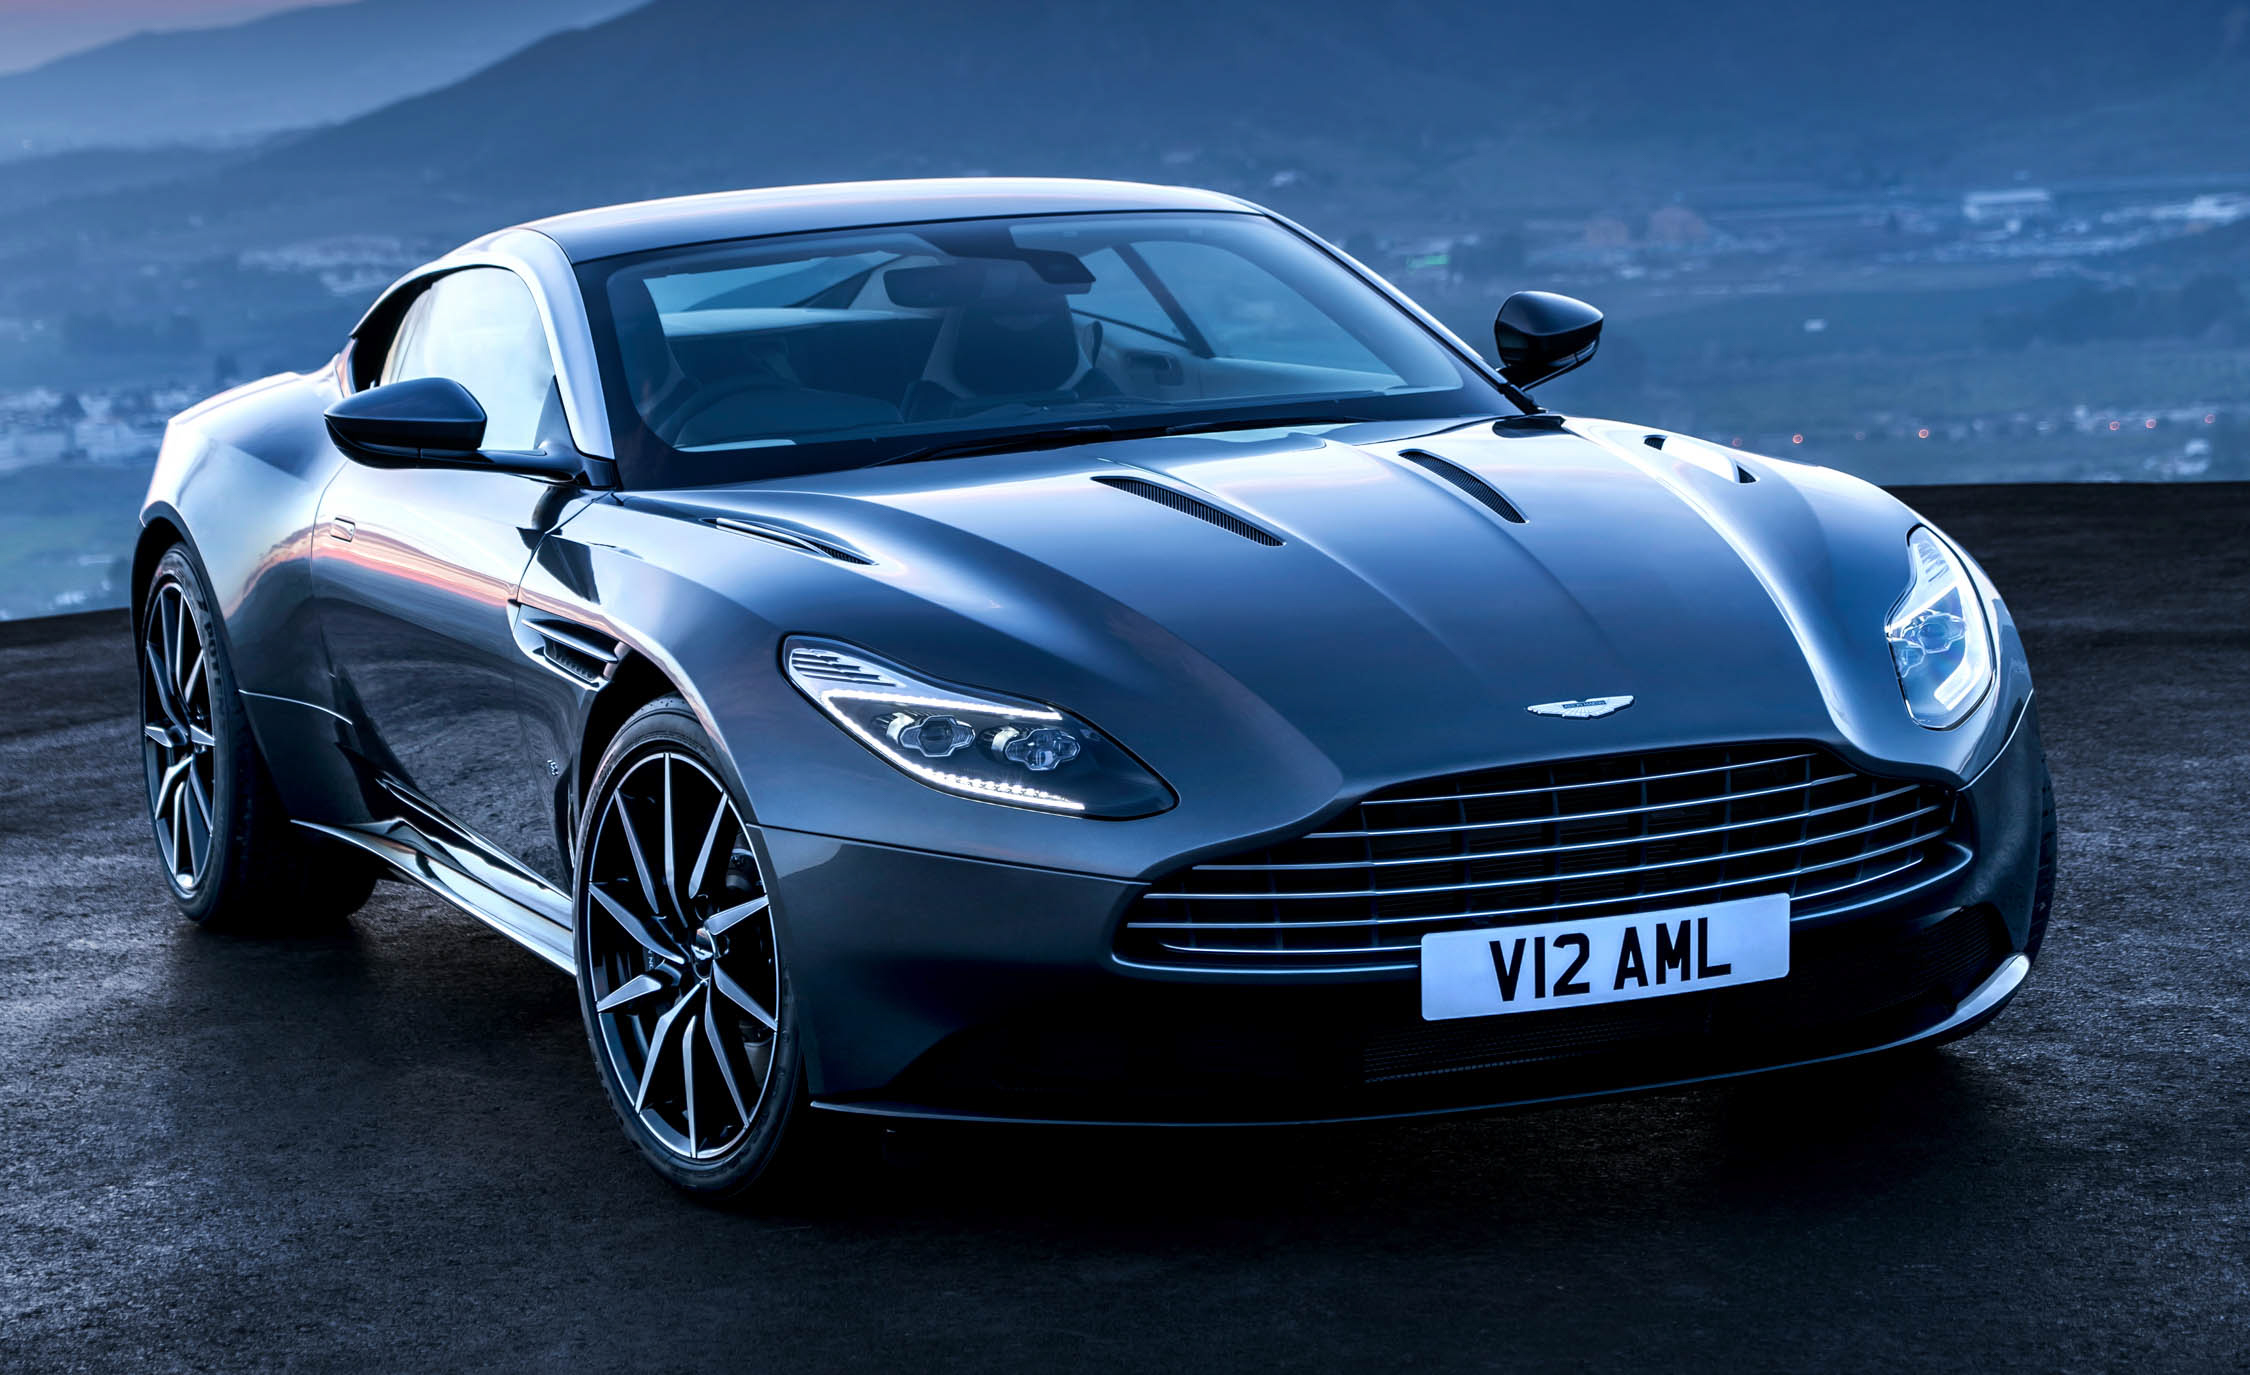 2017 Aston Martin Db11 Exterior (View 14 of 22)